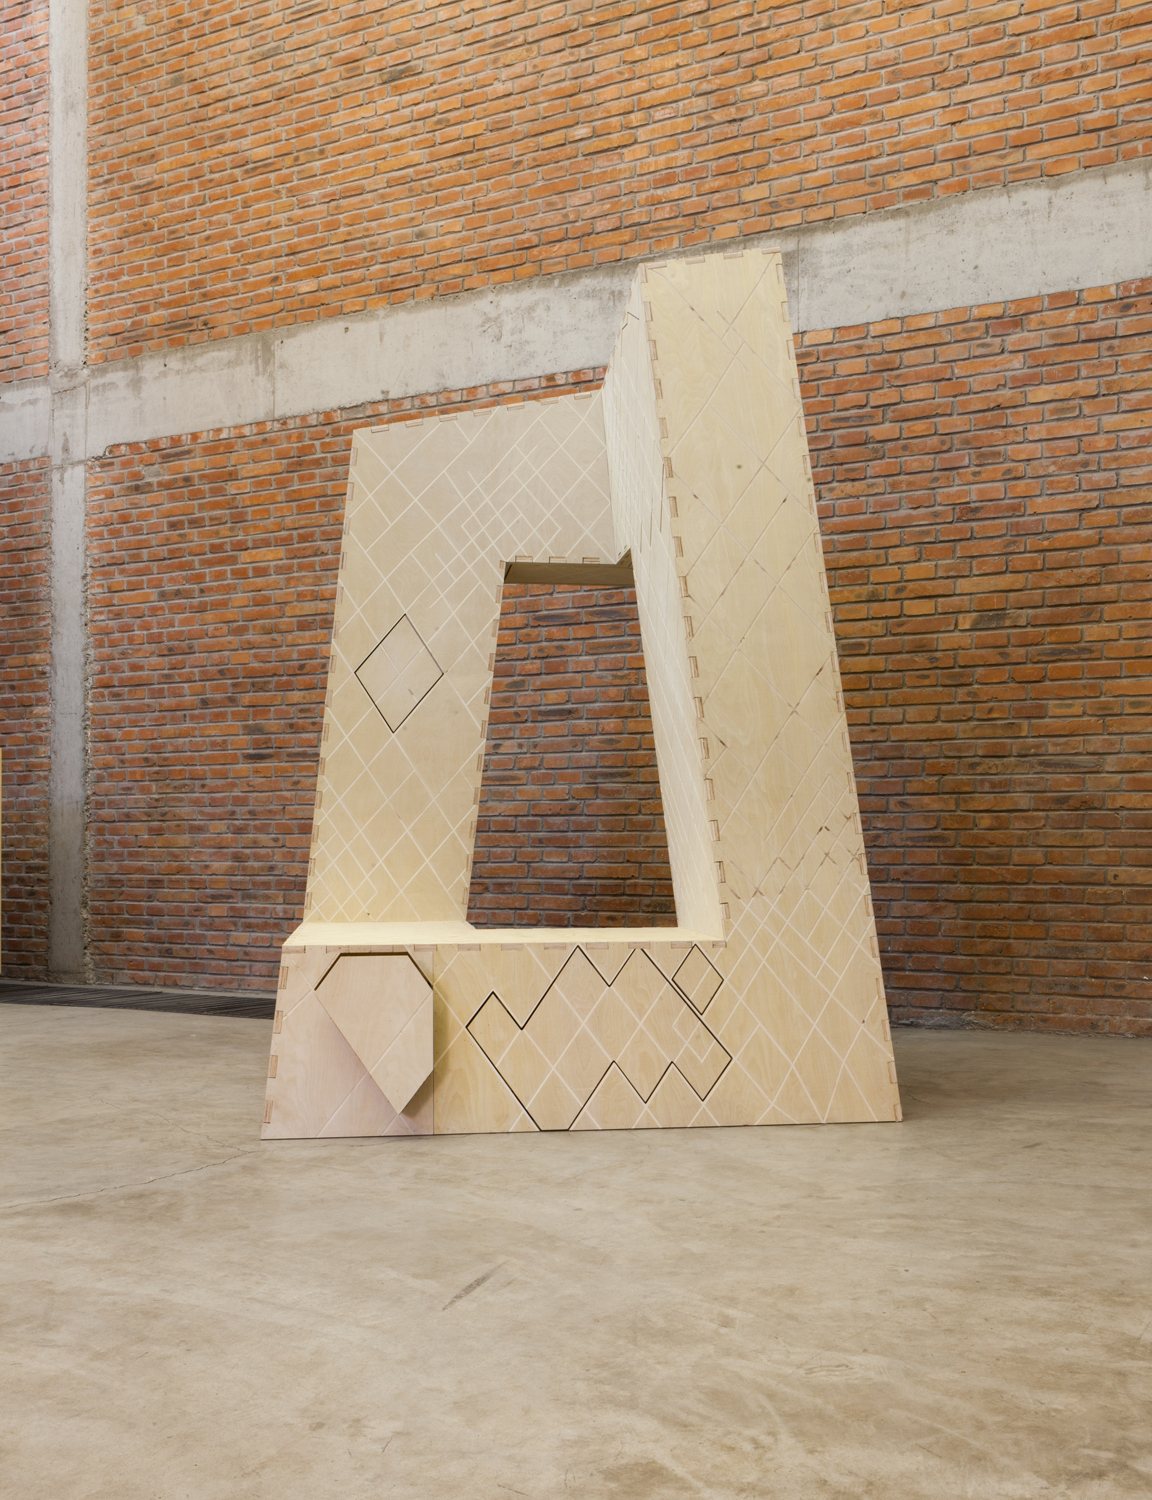 An unfinished wardrobe by Naihan Li, inspired by one of China's most iconic buildings